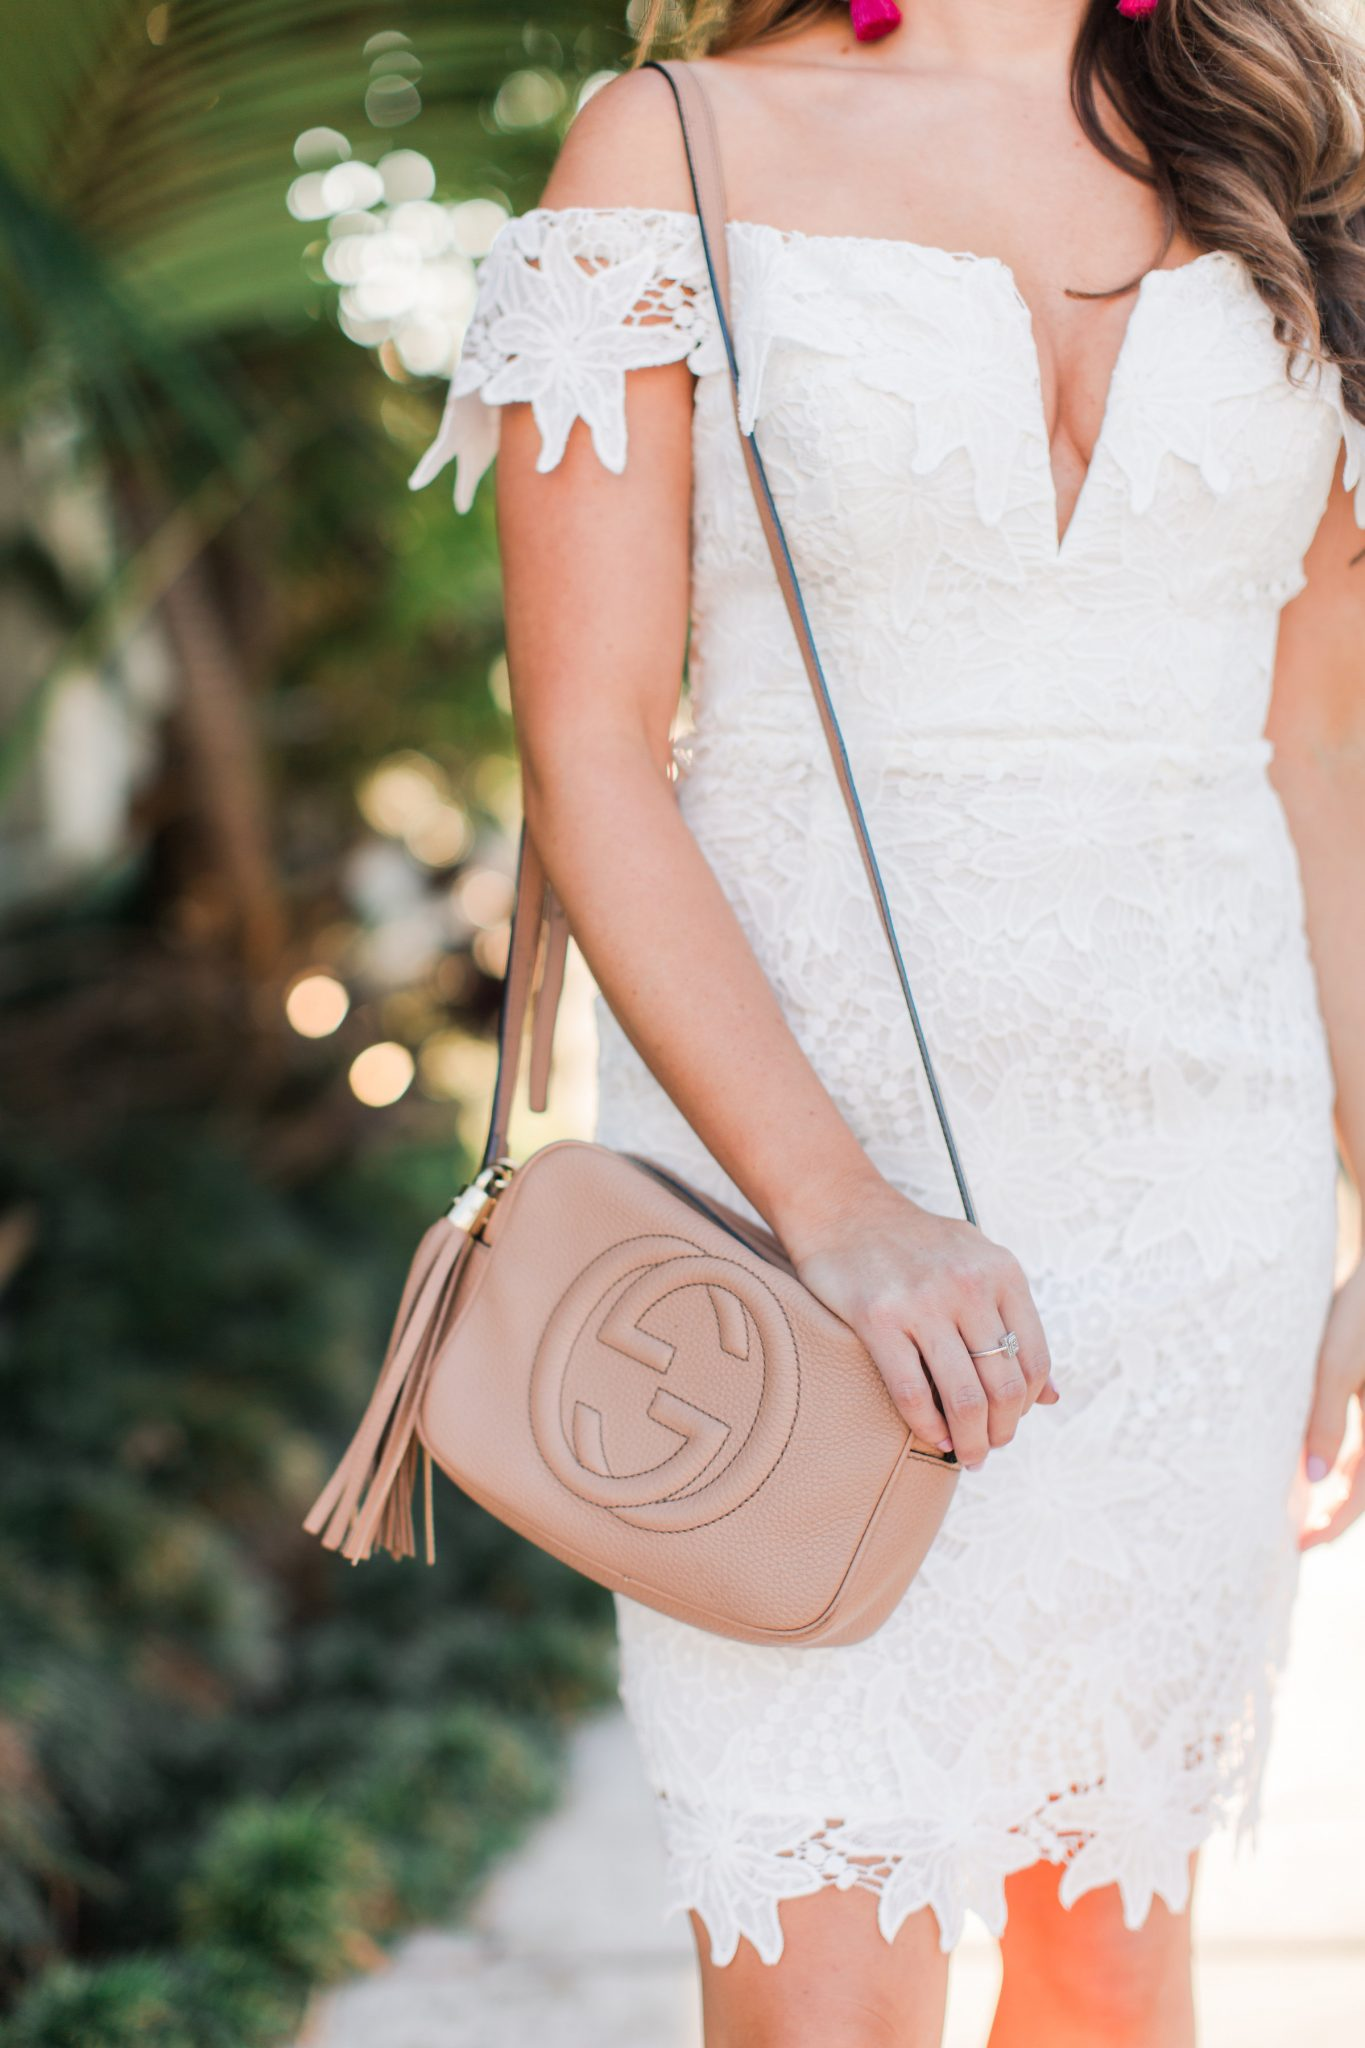 Maxie Elle | Gucci soho disco bag - Wedding Shower Outfit by popular Orange County fashion blogger Maxie Elle